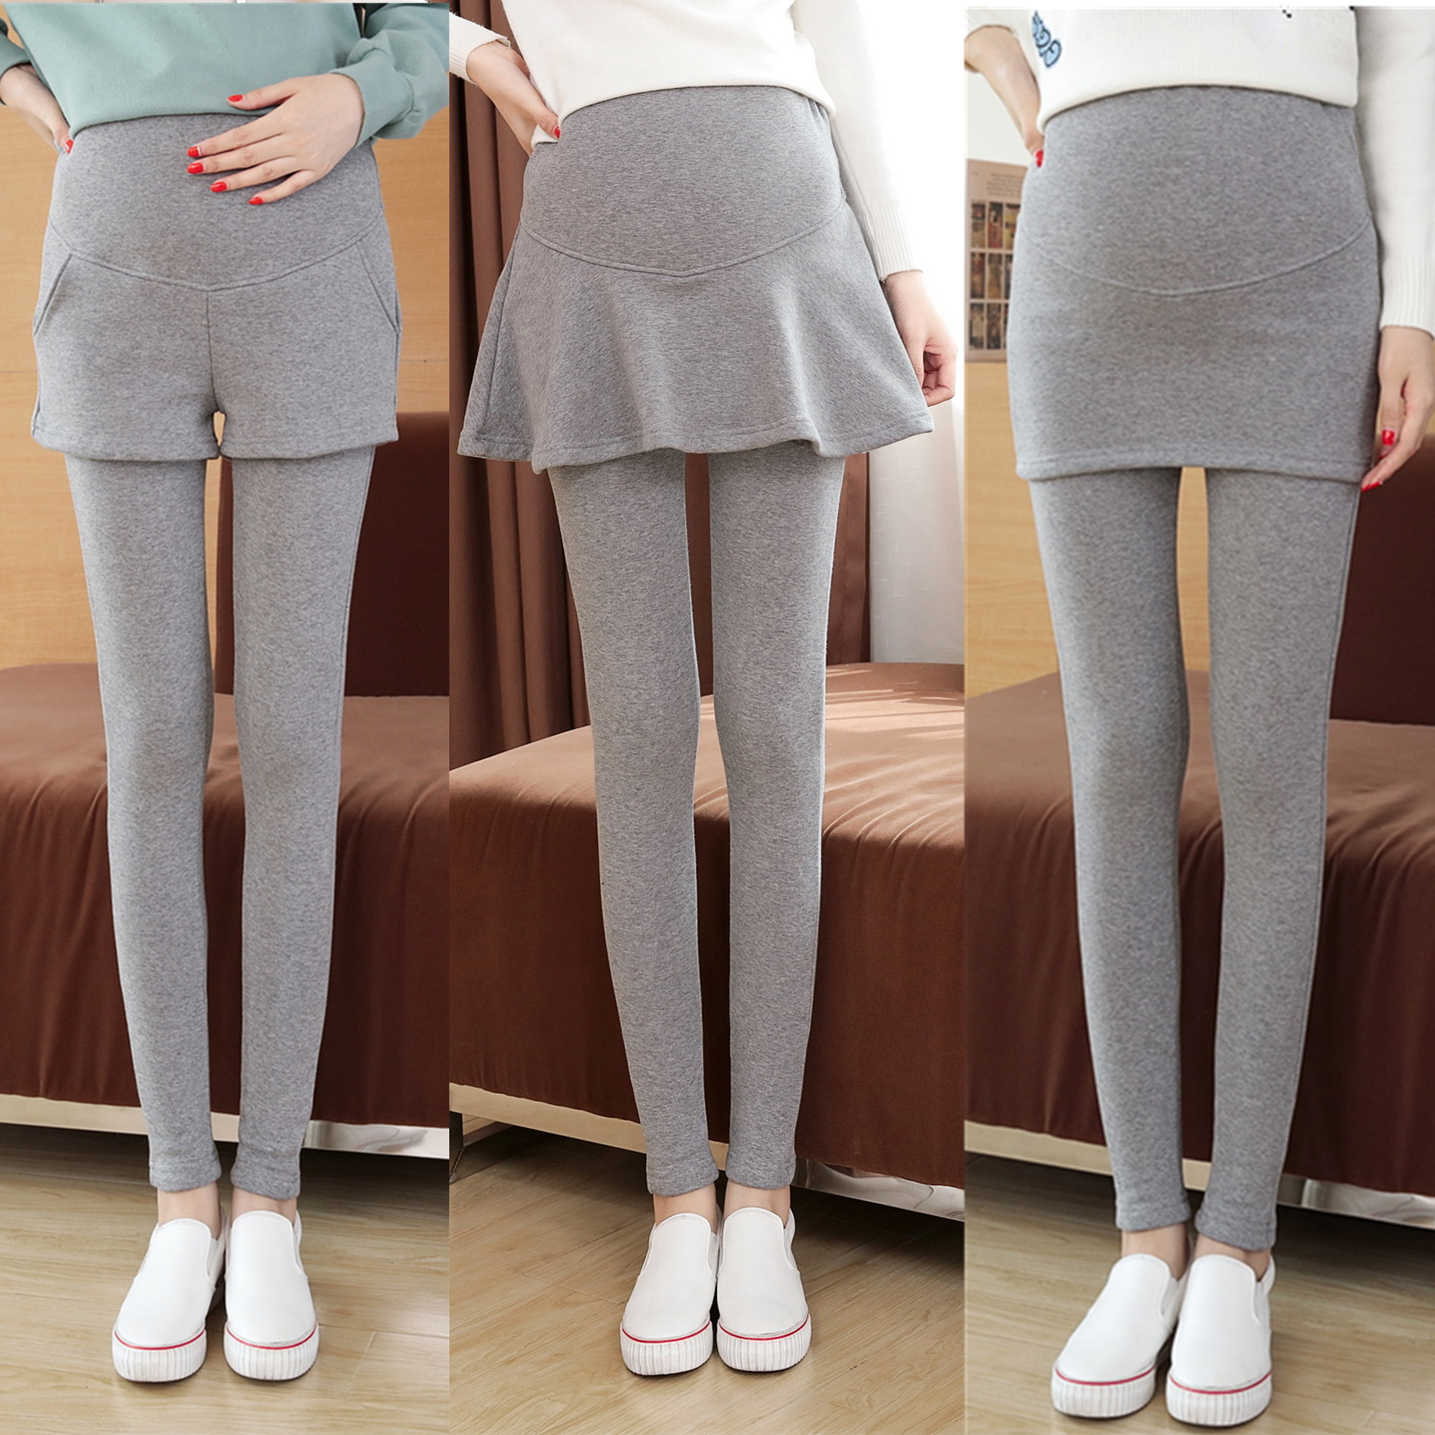 ec839f2c36a4d ... Fake Two Pieces Belly Skinny Maternity Legging Elastic Cotton  Adjustable Waist Pencil Pregnancy Pants Clothes for ...